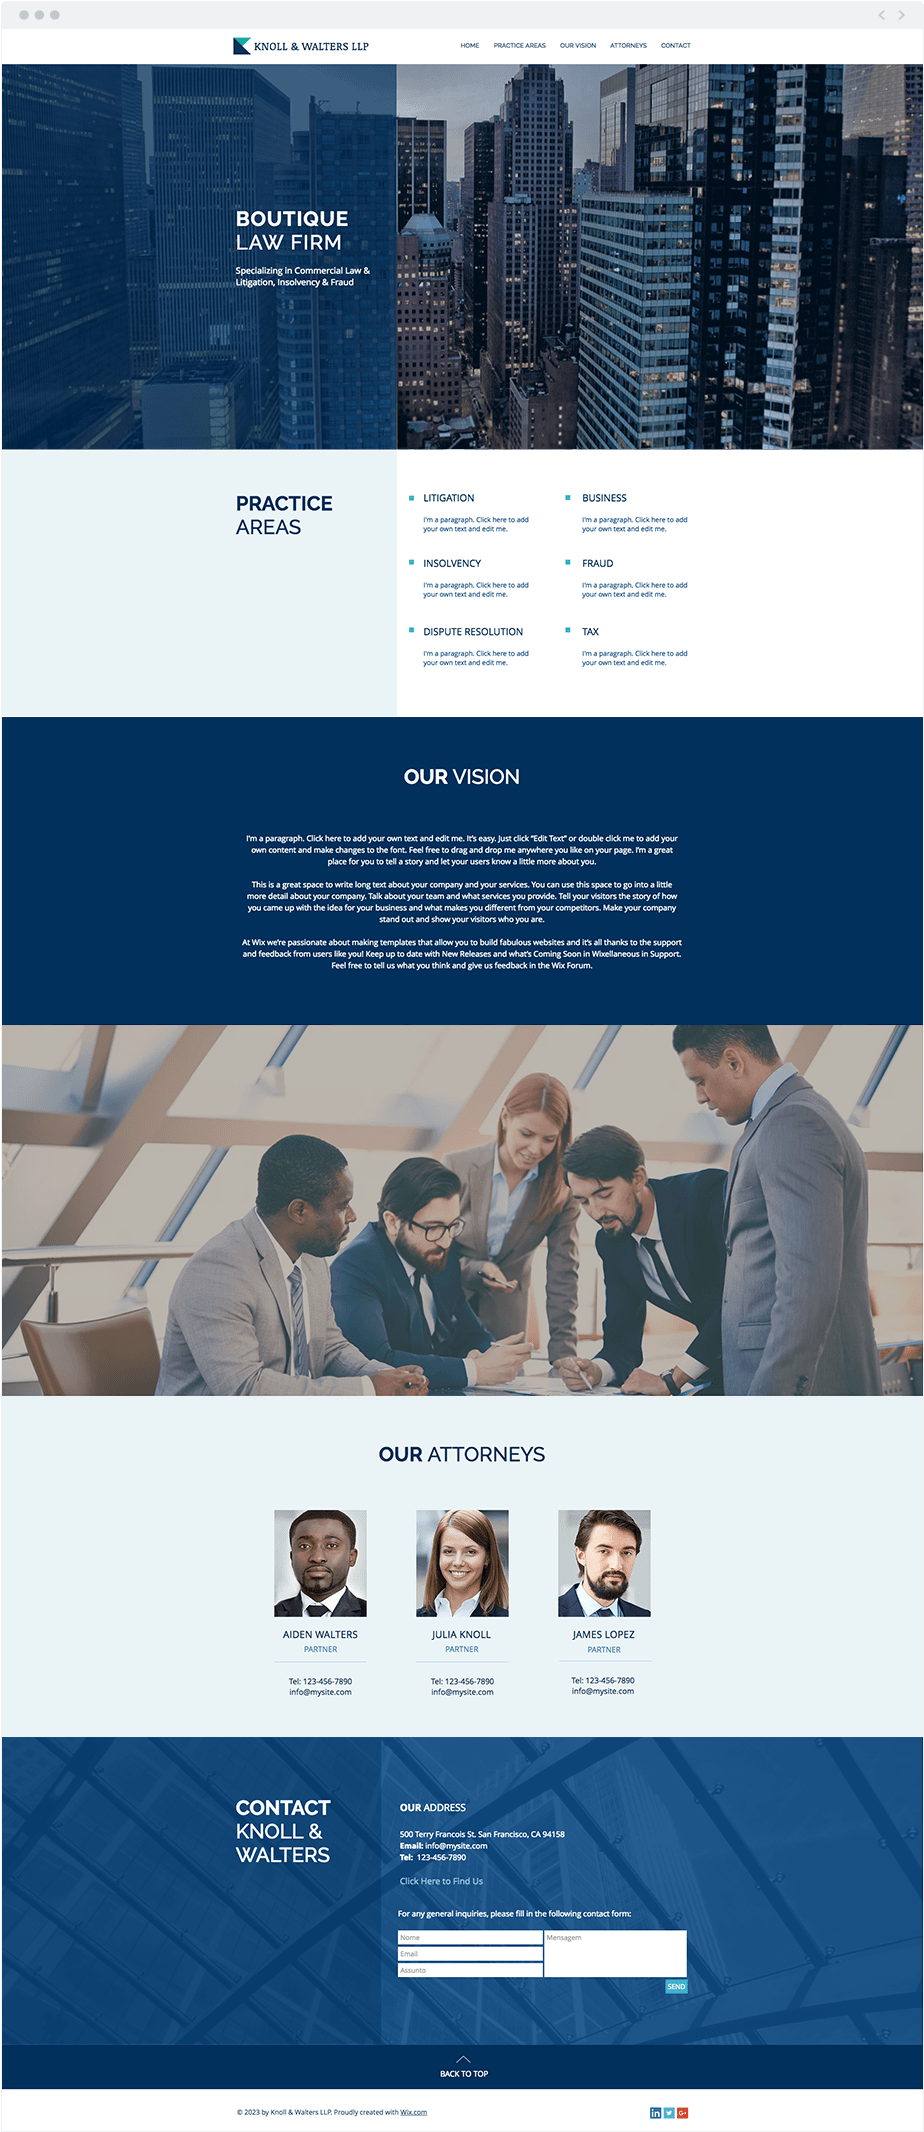 Template Wix Boutique Law Firm